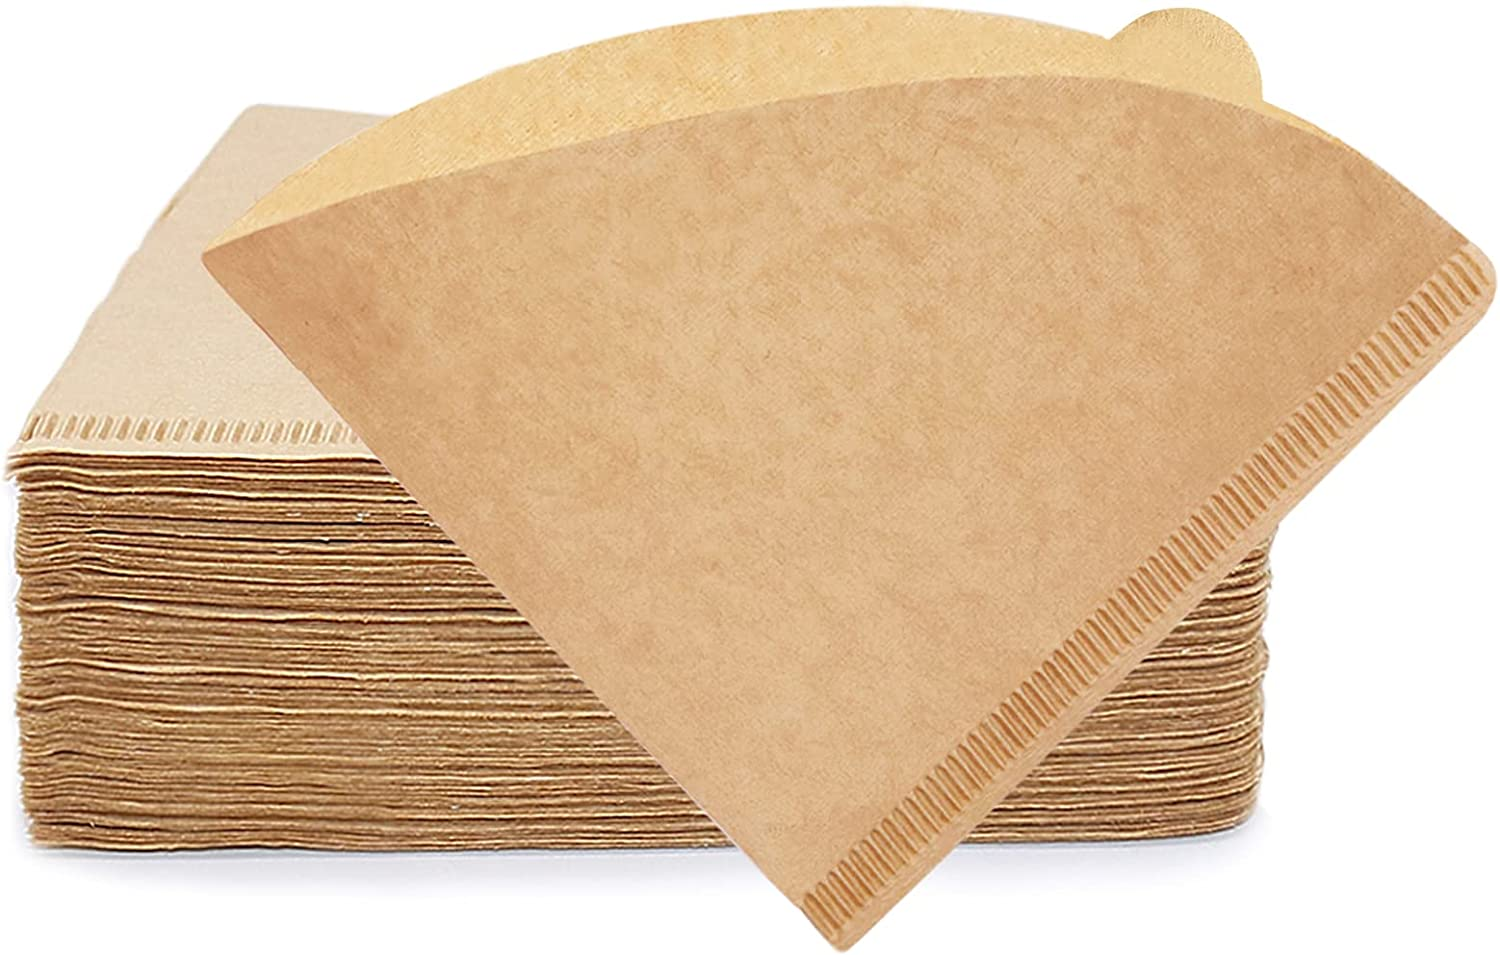 YQL V60 Cone Coffee Recommendation Filter Size02 Count Unbleached 200 D Max 46% OFF Natural